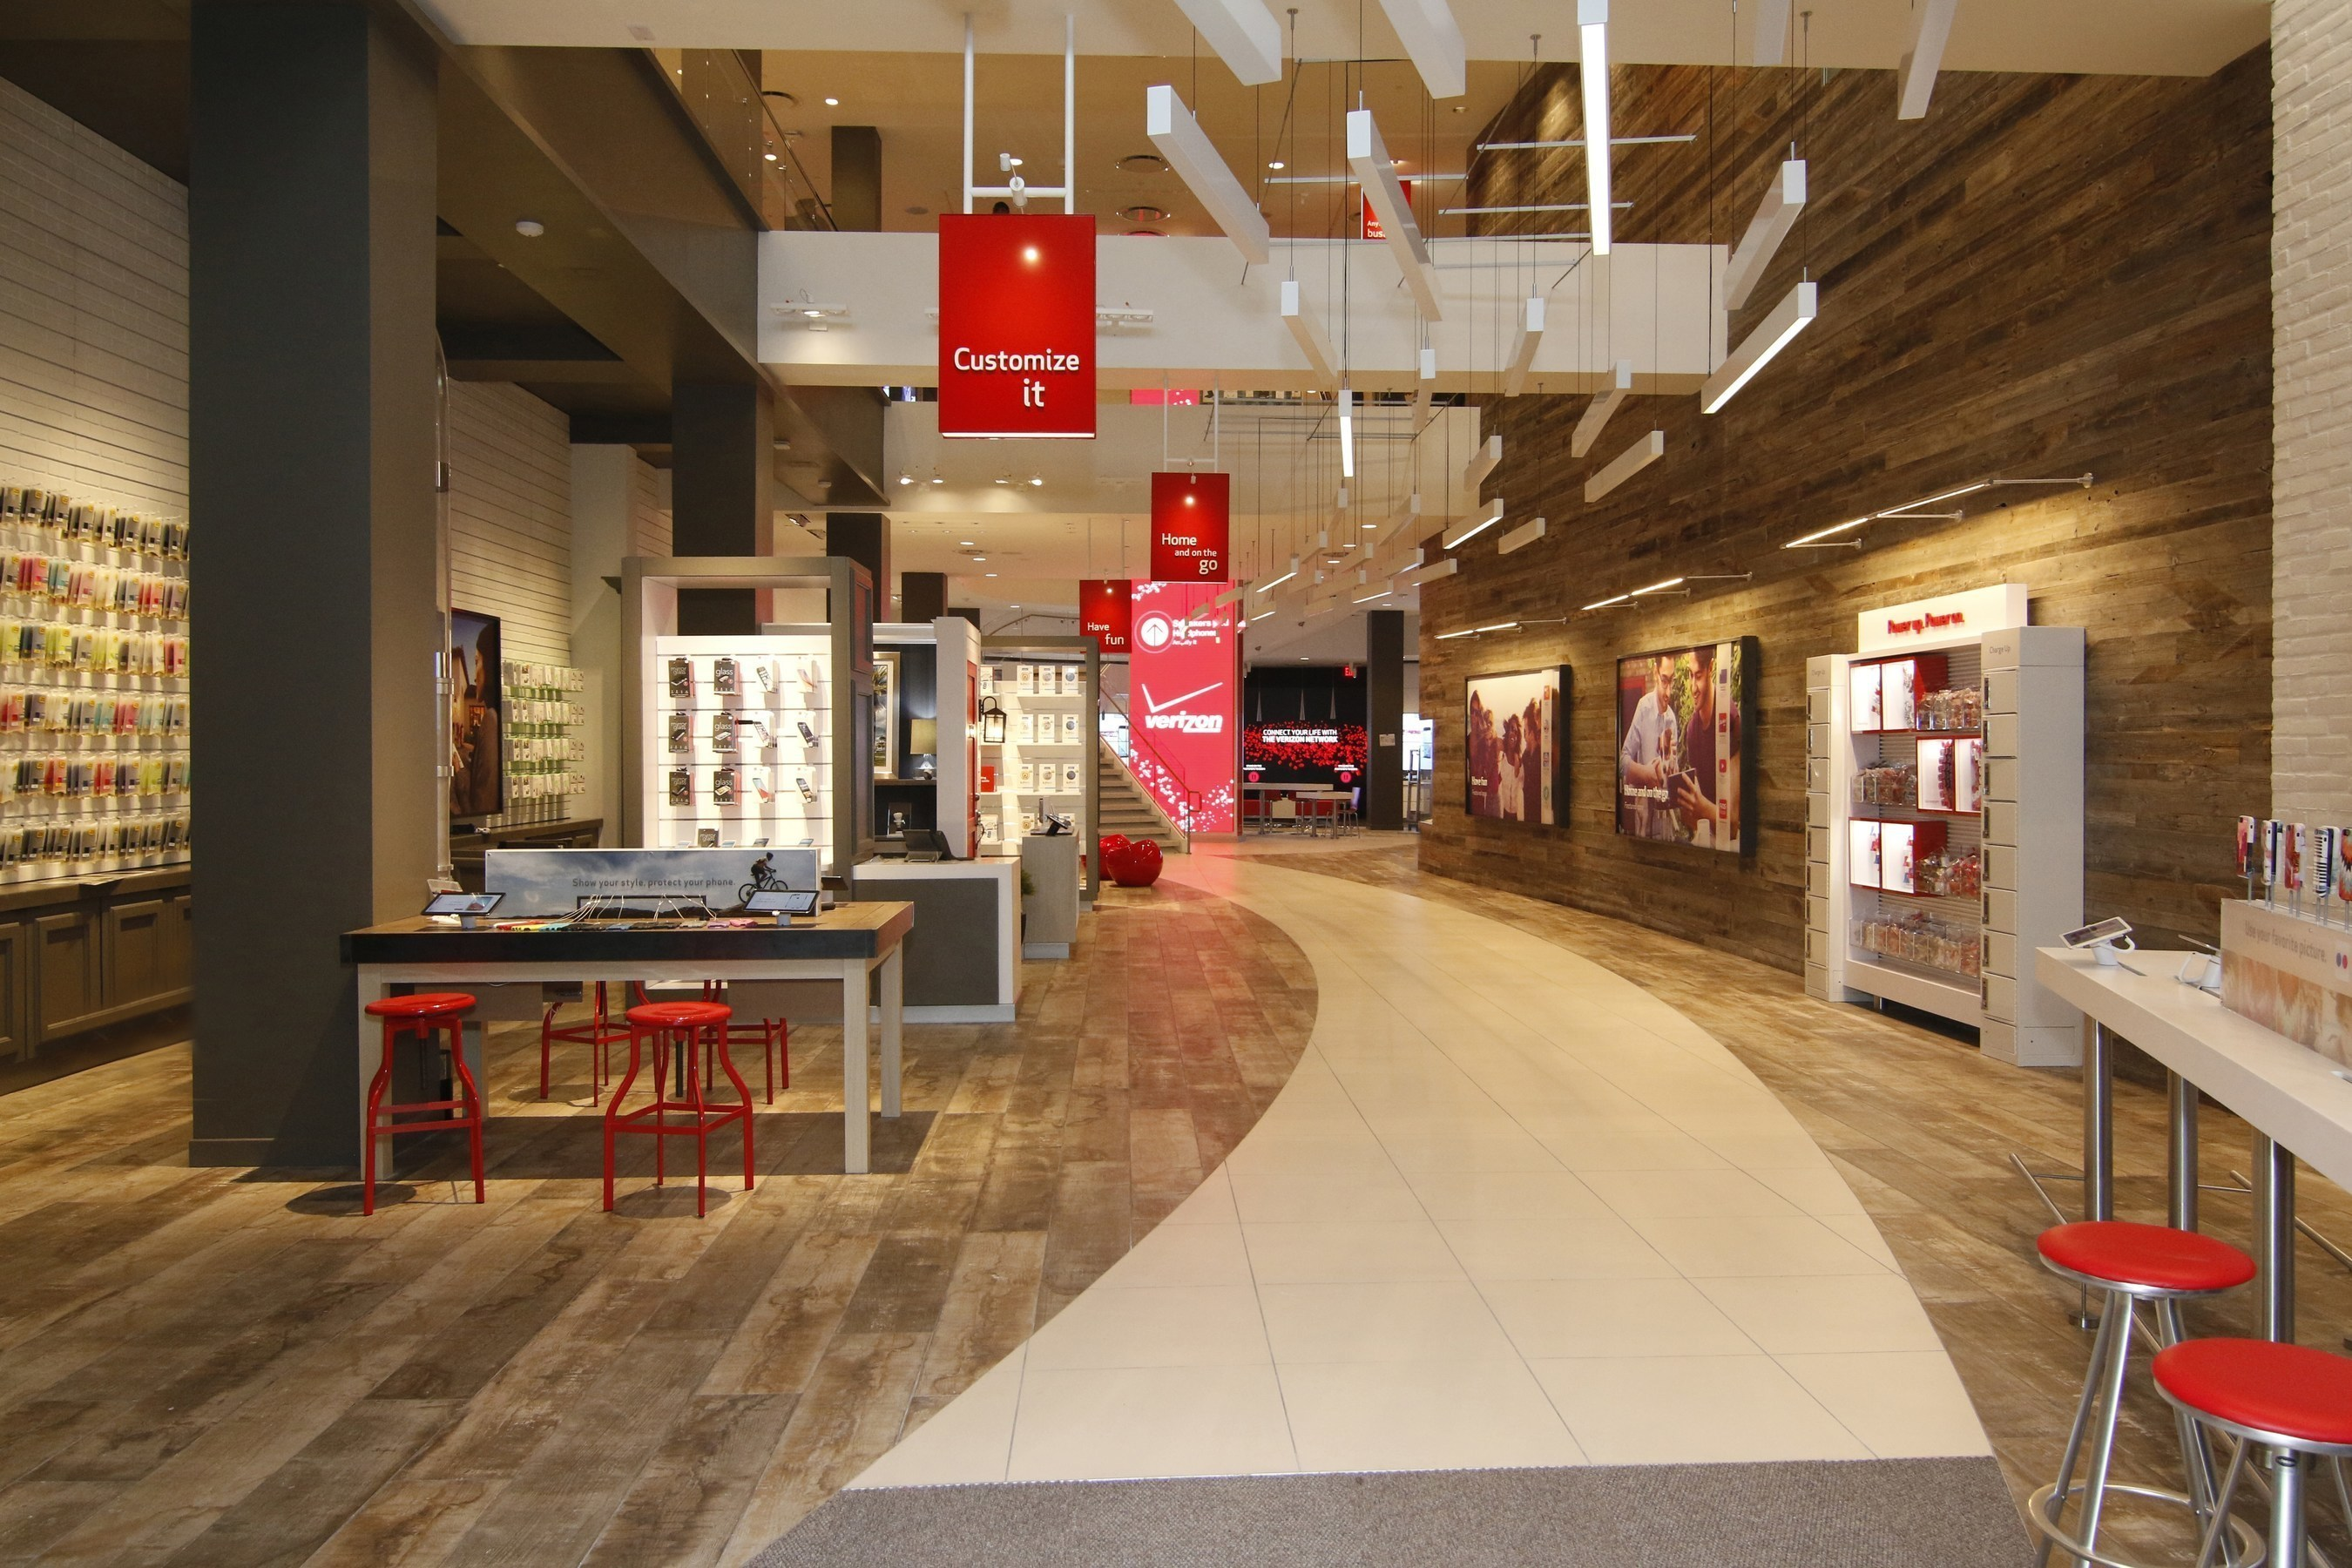 Santa Monica residents and visitors get their first peek at the new Verizon Wireless Destination Store, the first store of its kind on the West Coast. An official Grand opening celebration and concert is scheduled for July 18 to celebrate the first West Coast location